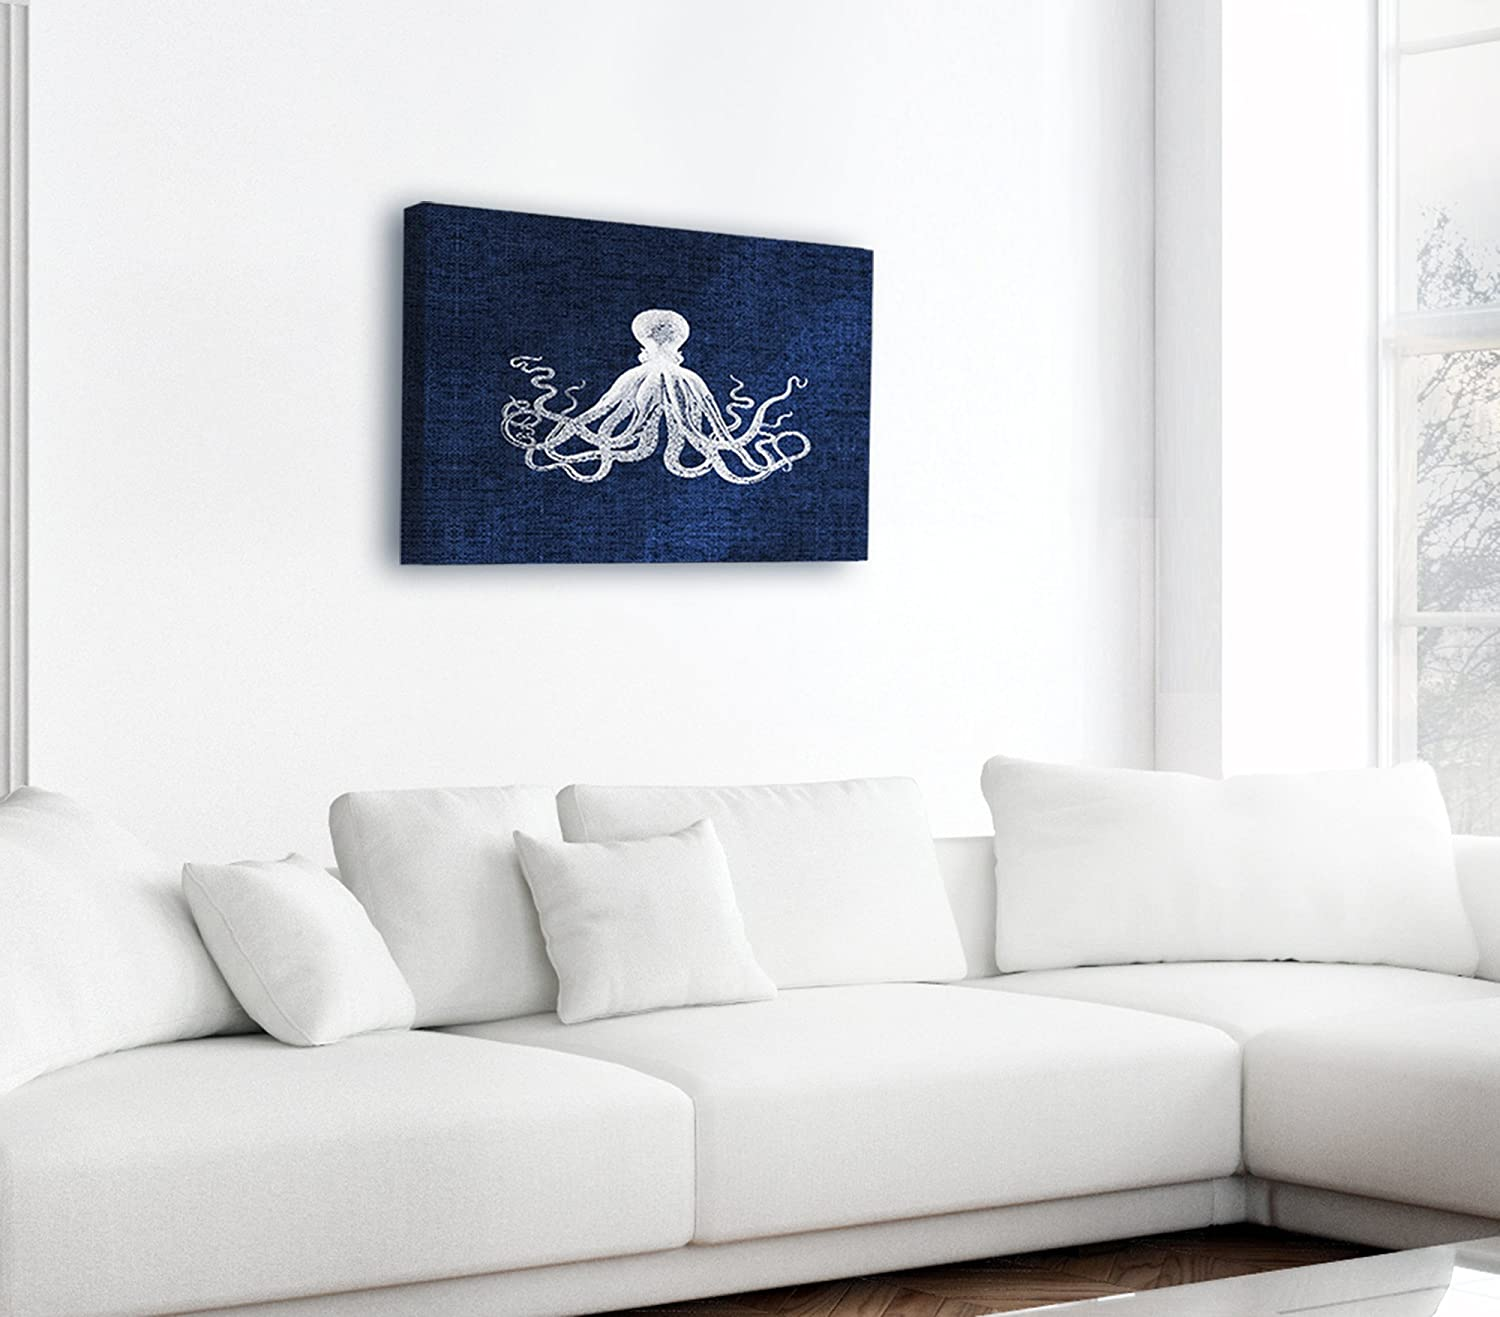 The Stupell Home Decor Collection Octopus on Black Canvas Art Stupell Industries cwp-124/_over/_can/_24x36